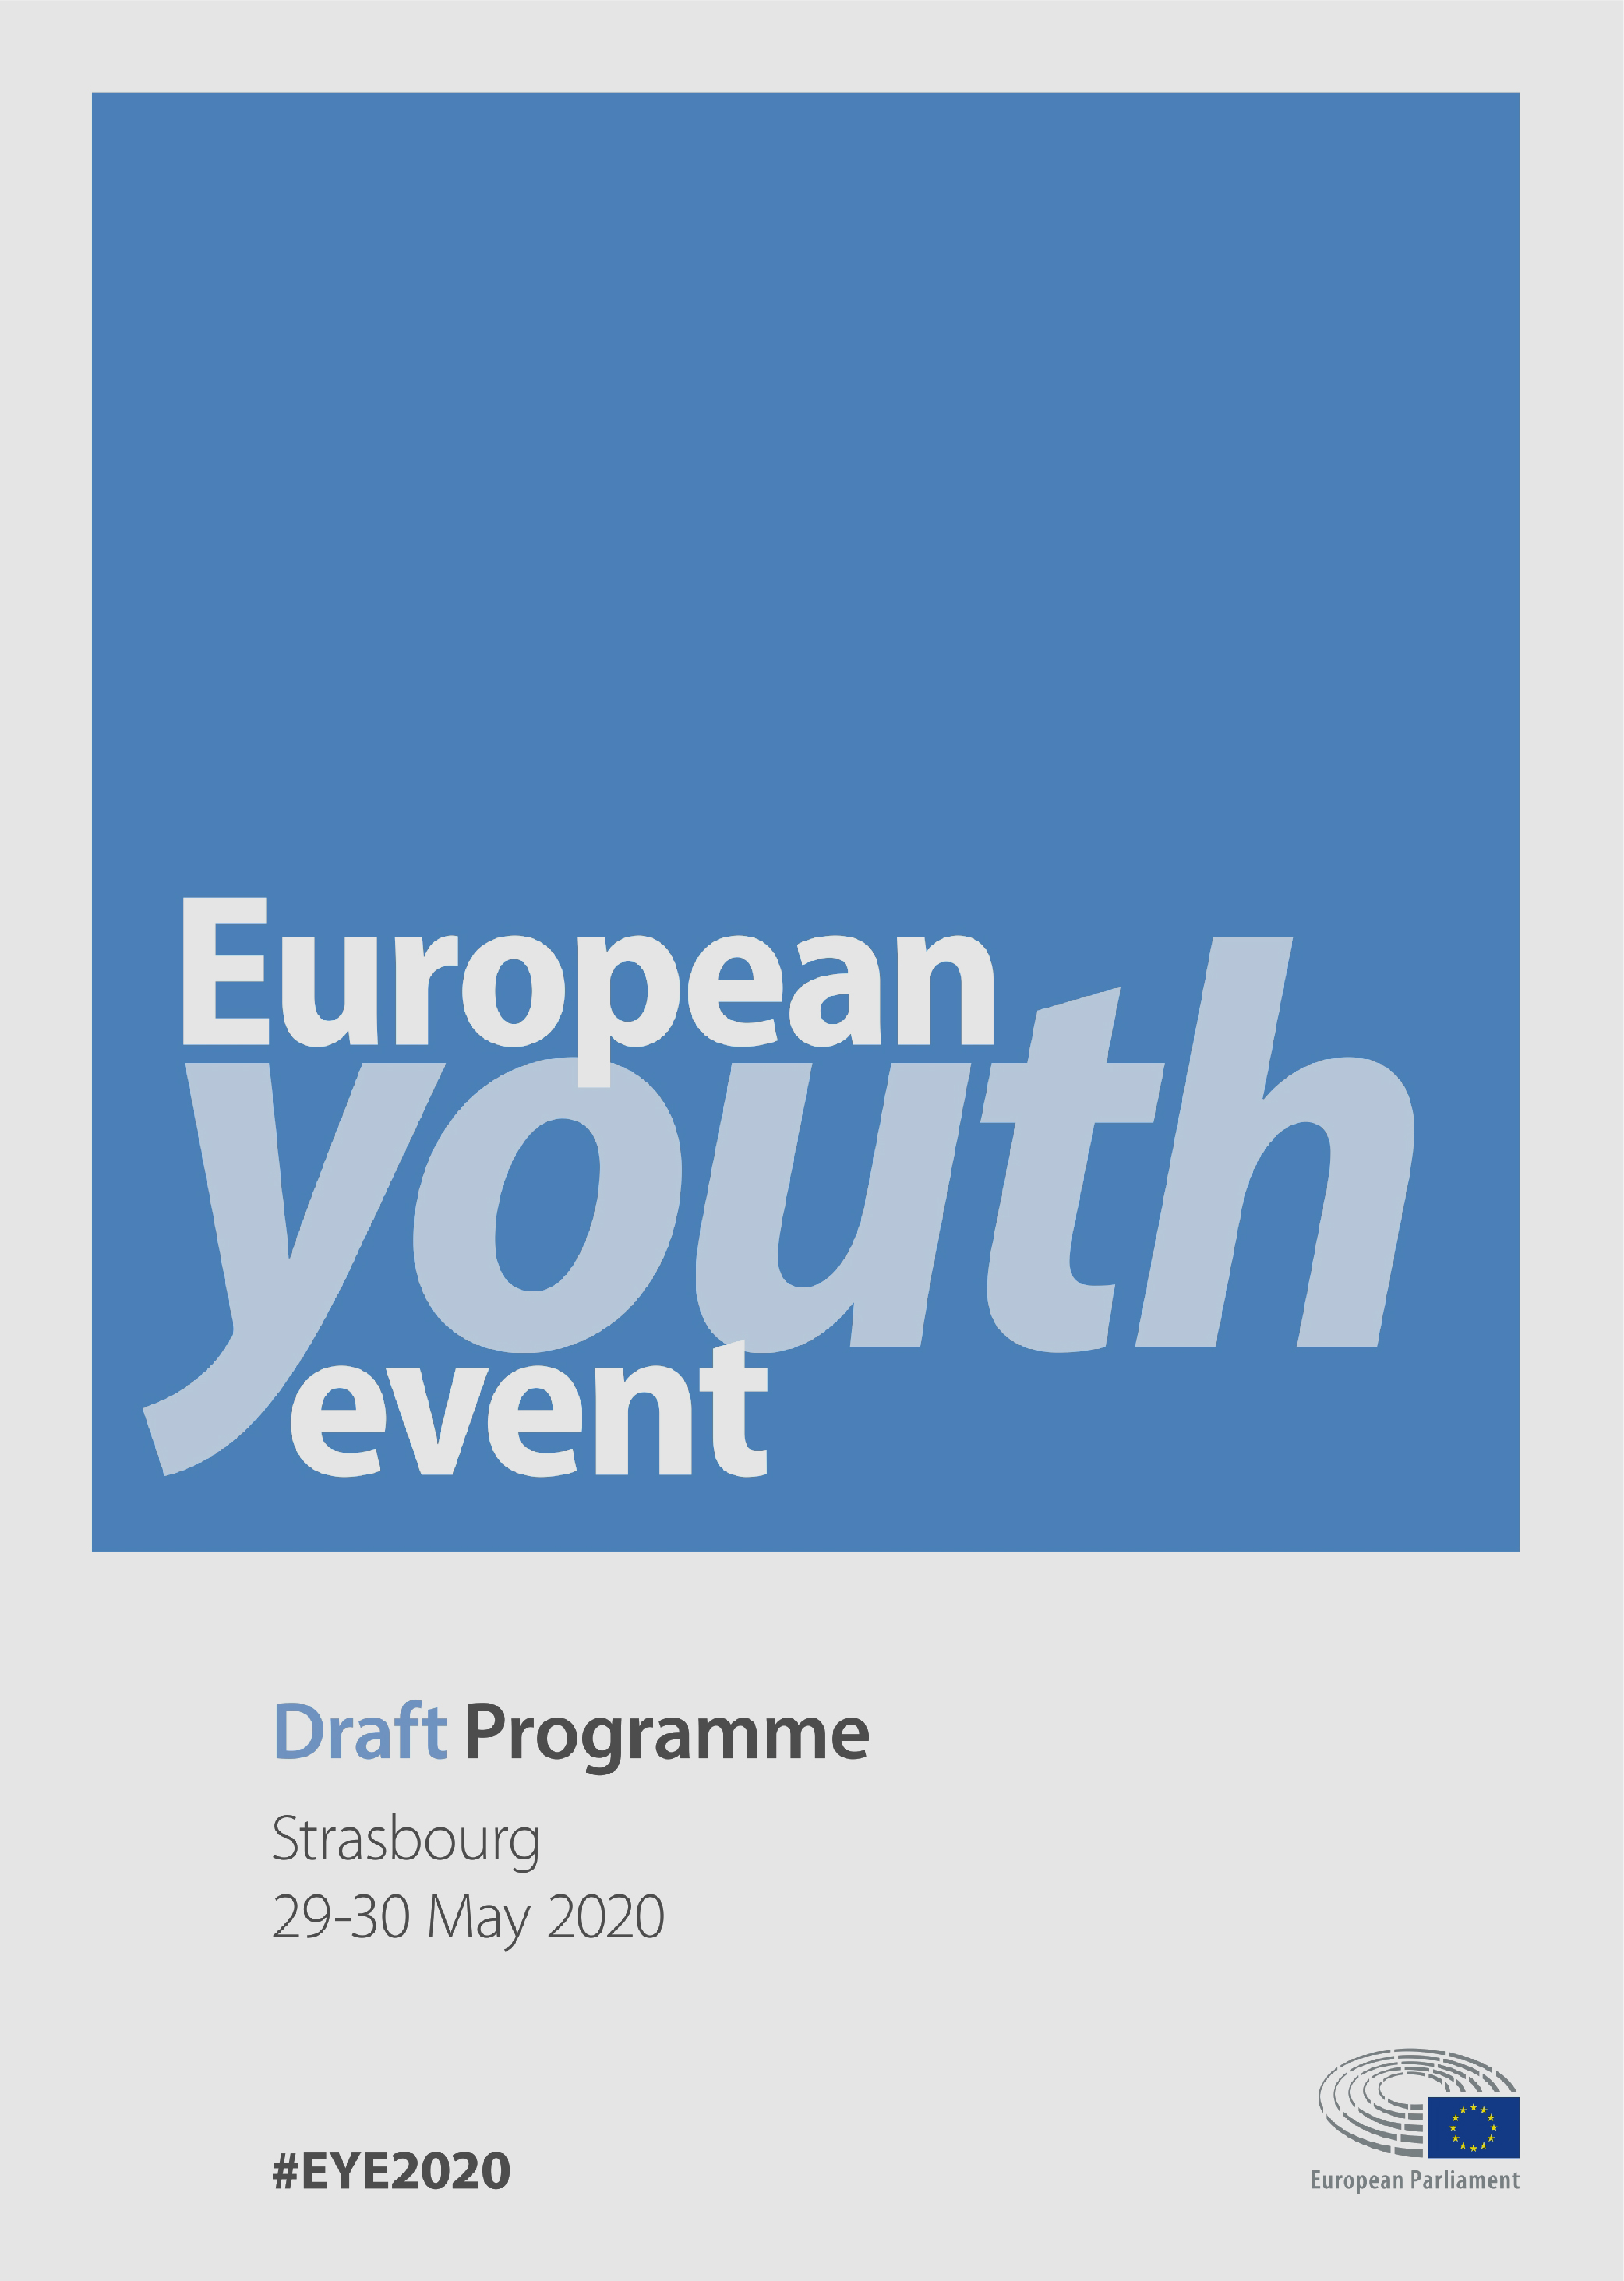 EYE2020 draft programme